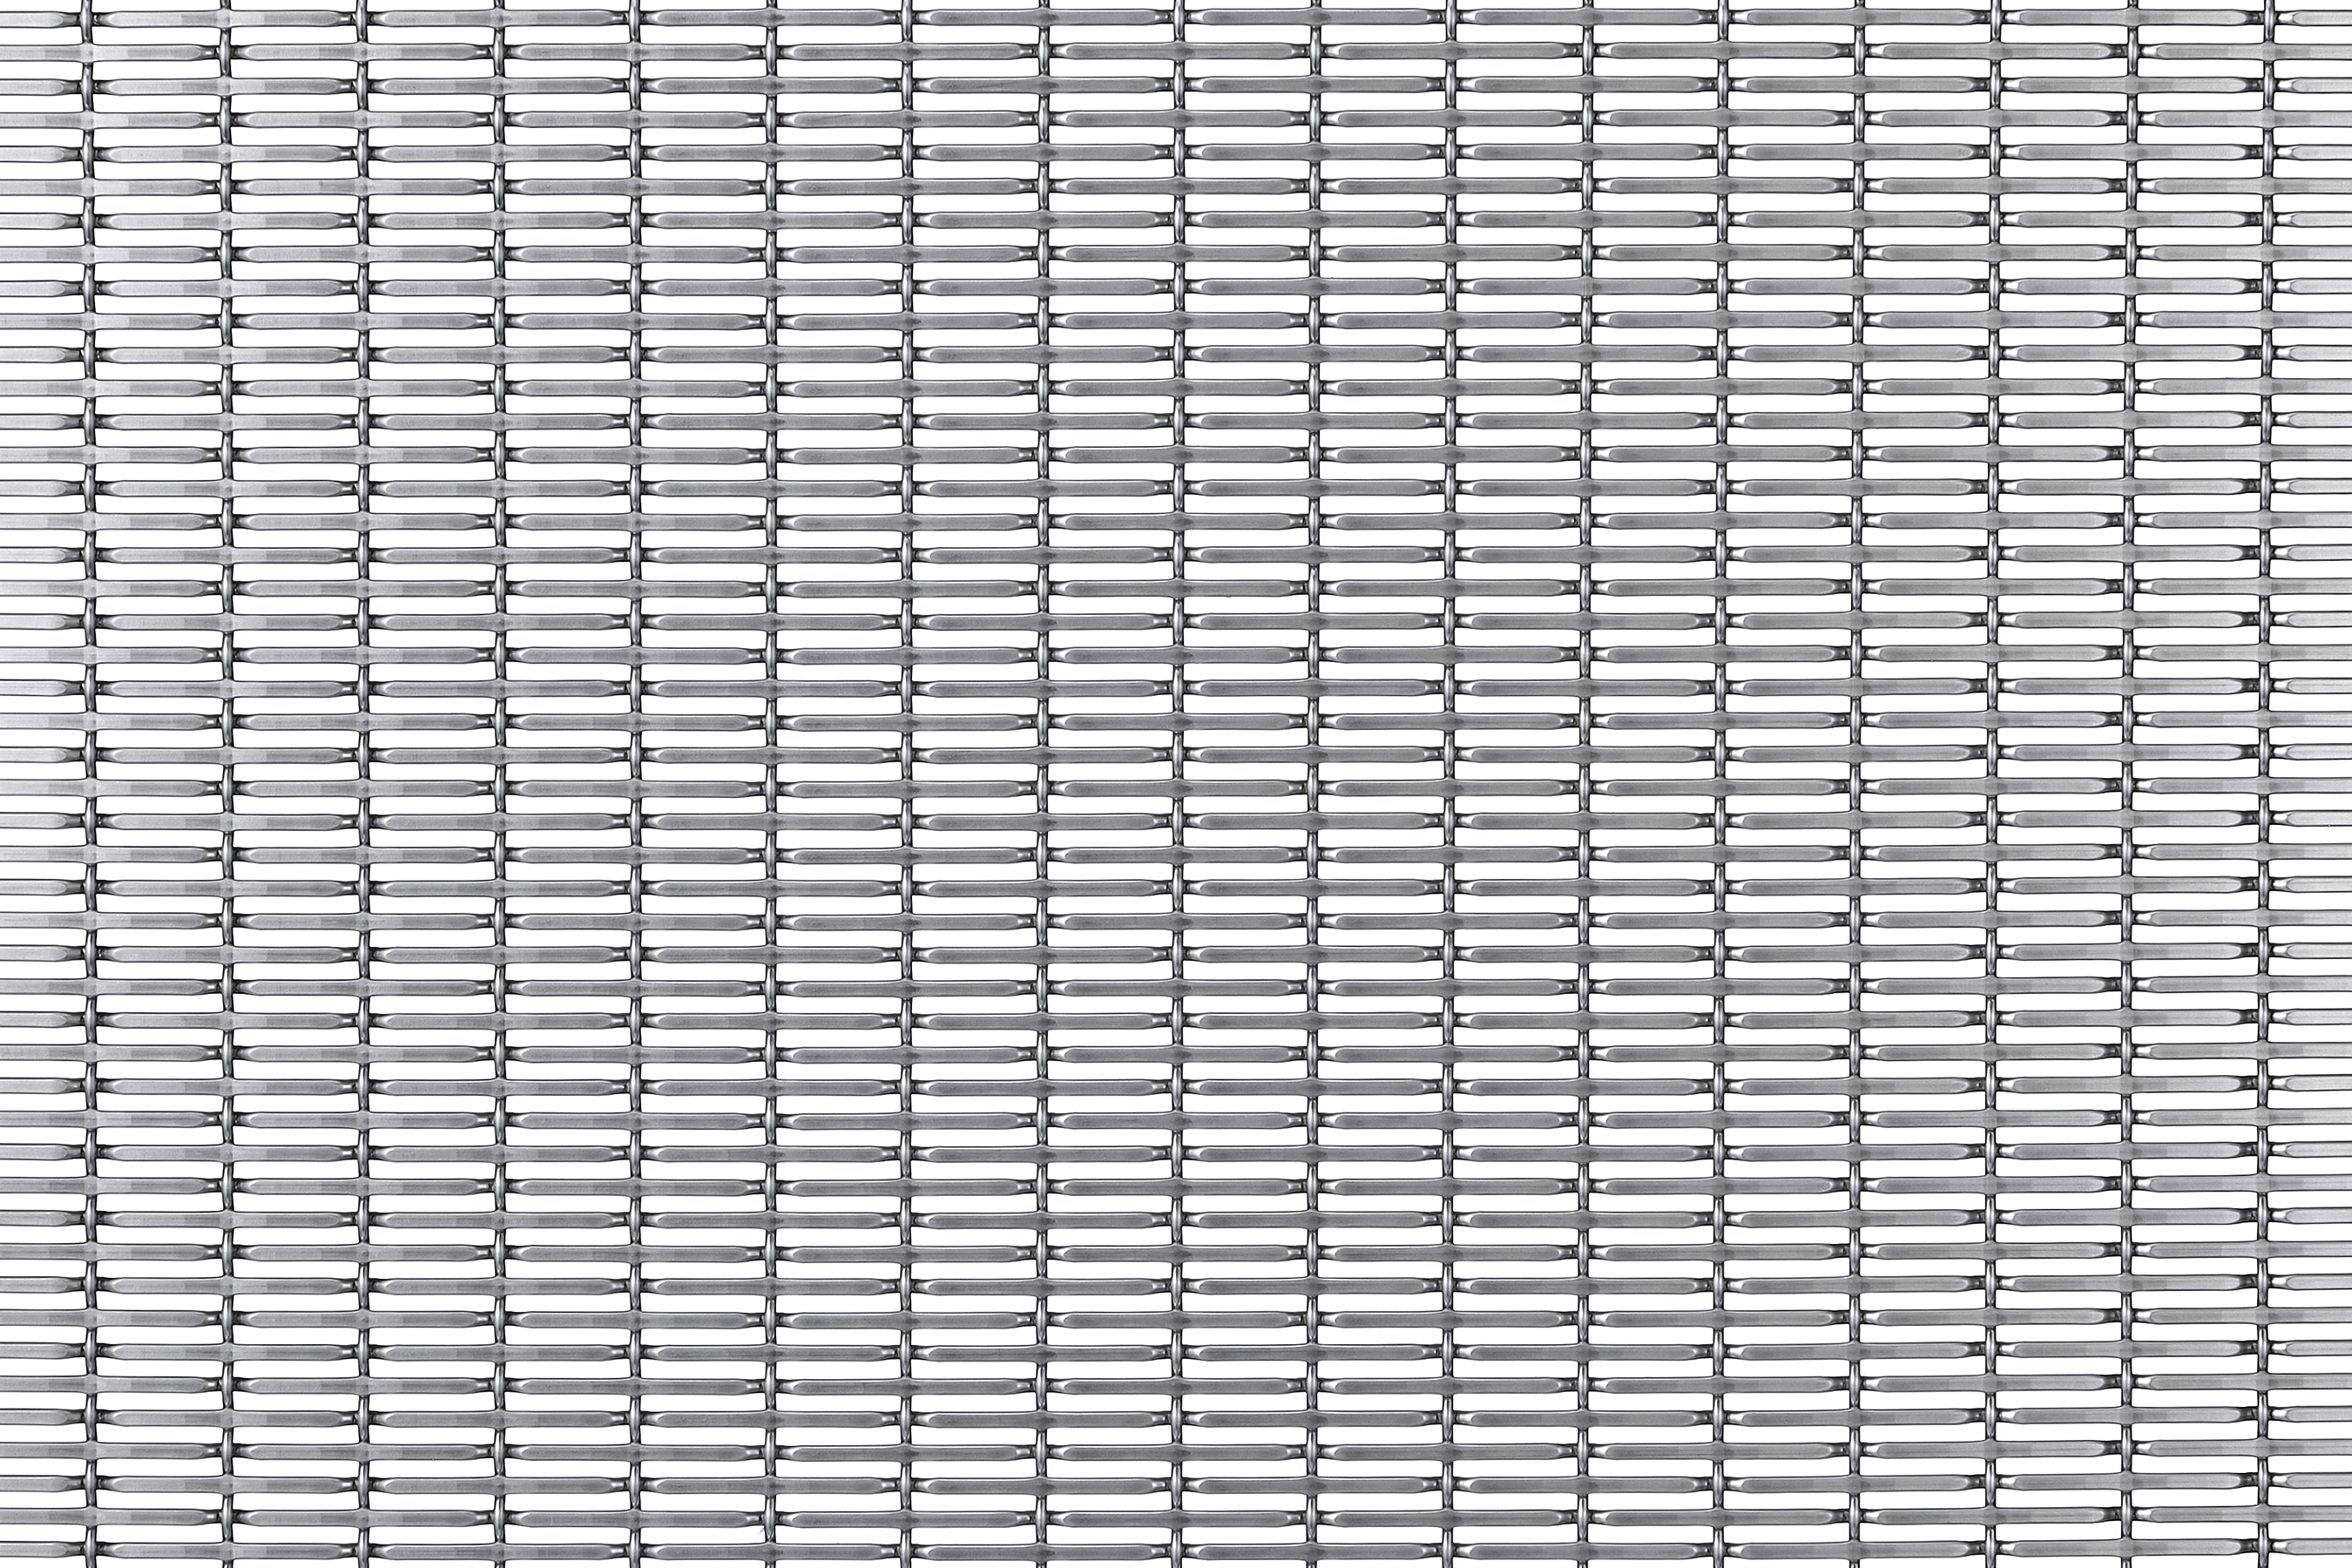 FPZ-52 Stainless Steel Wire Mesh